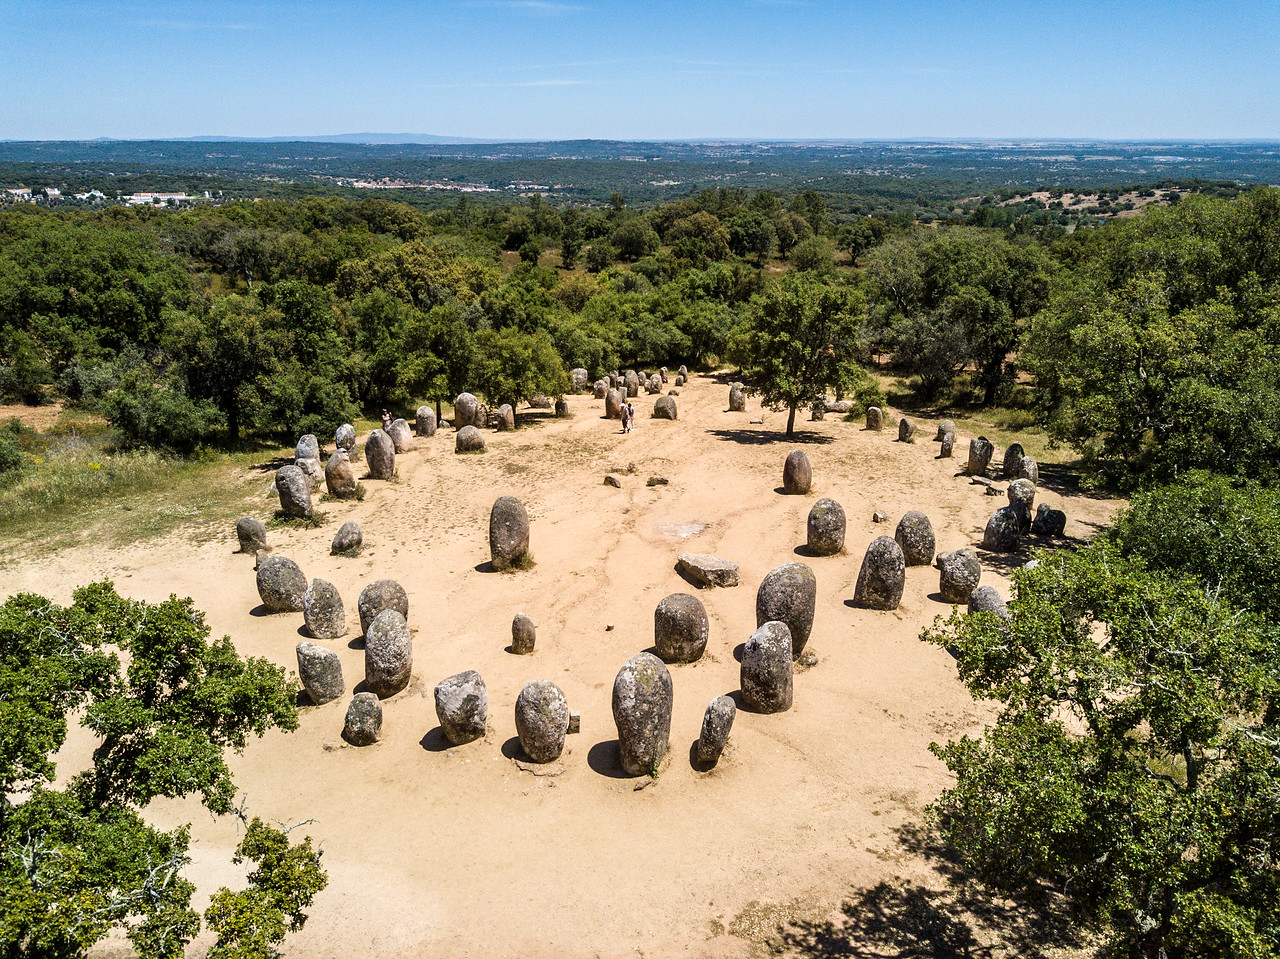 Drone Image of the Megaliths Near Evora, Portugal